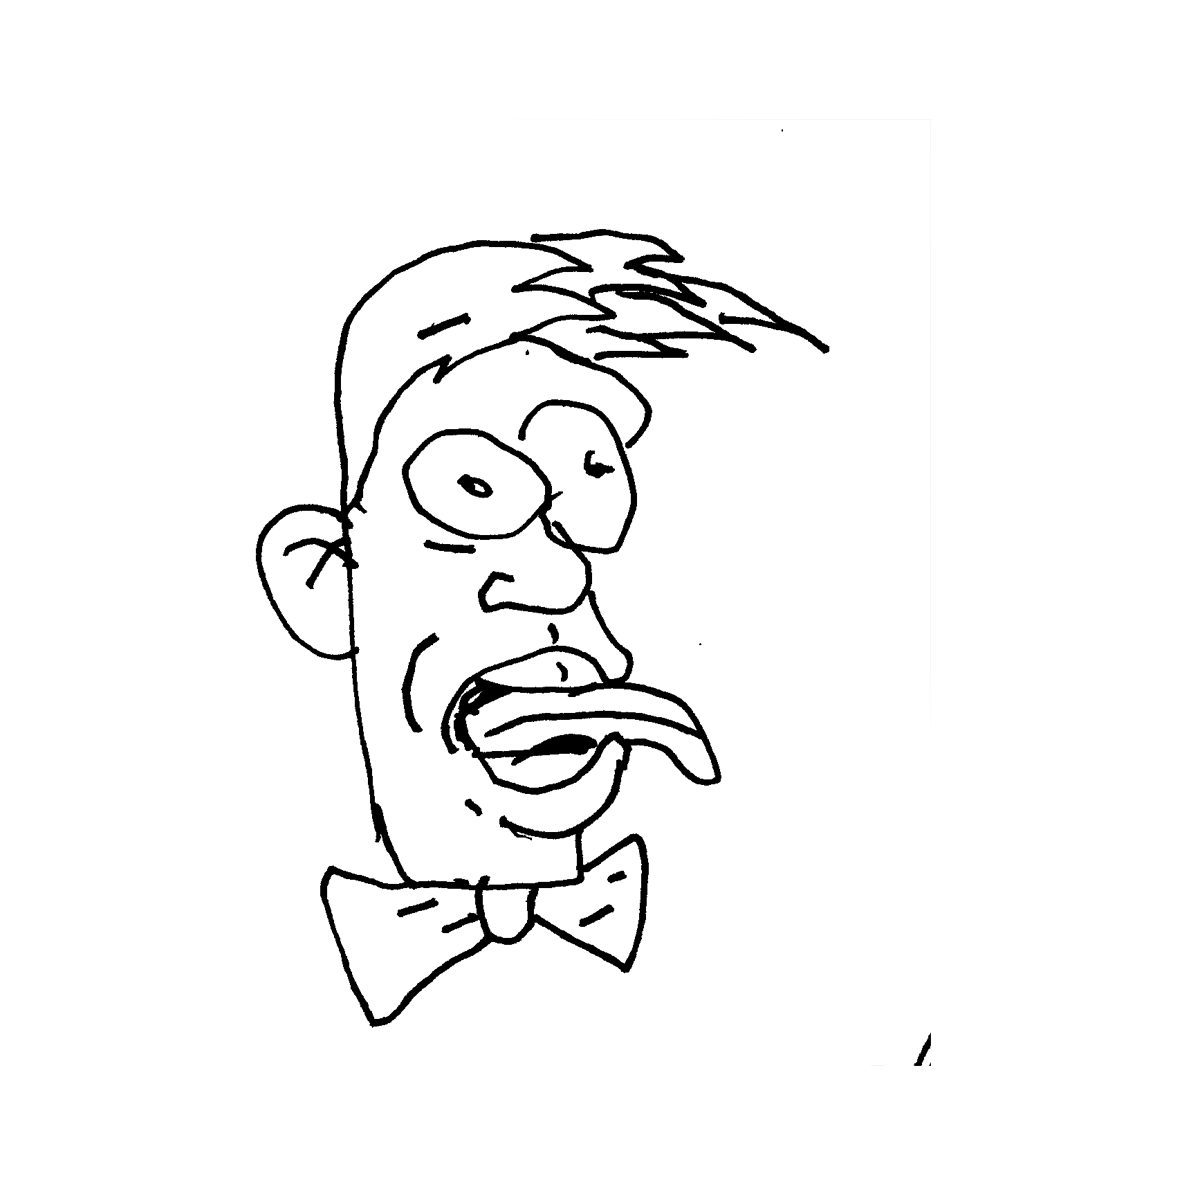 tonguer cartoon doodle